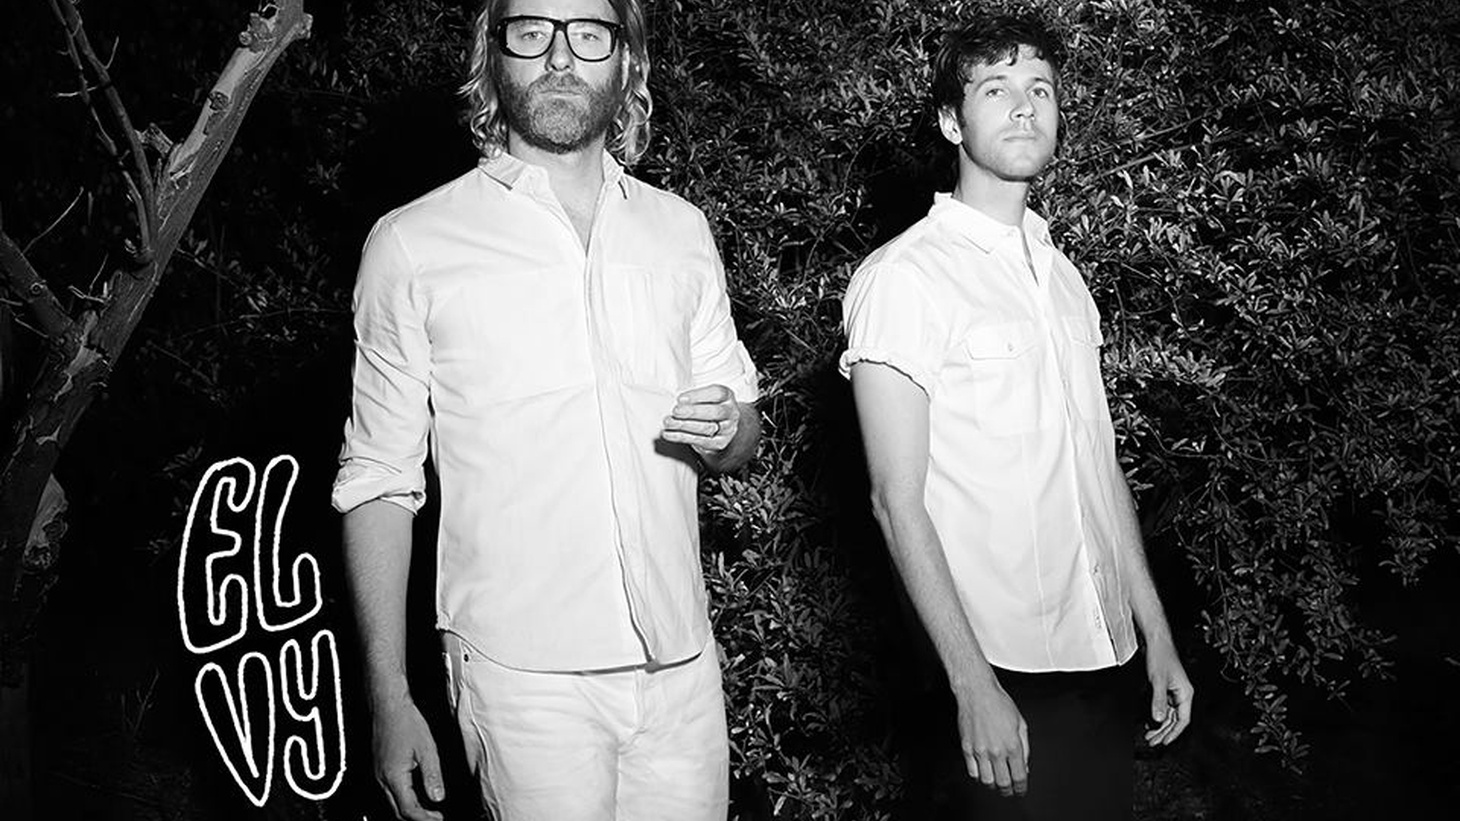 The collaboration between Matt Berninger (of The National) & Brent Knopf (of Menomena) stems from their decade long friendship and musical kinship.